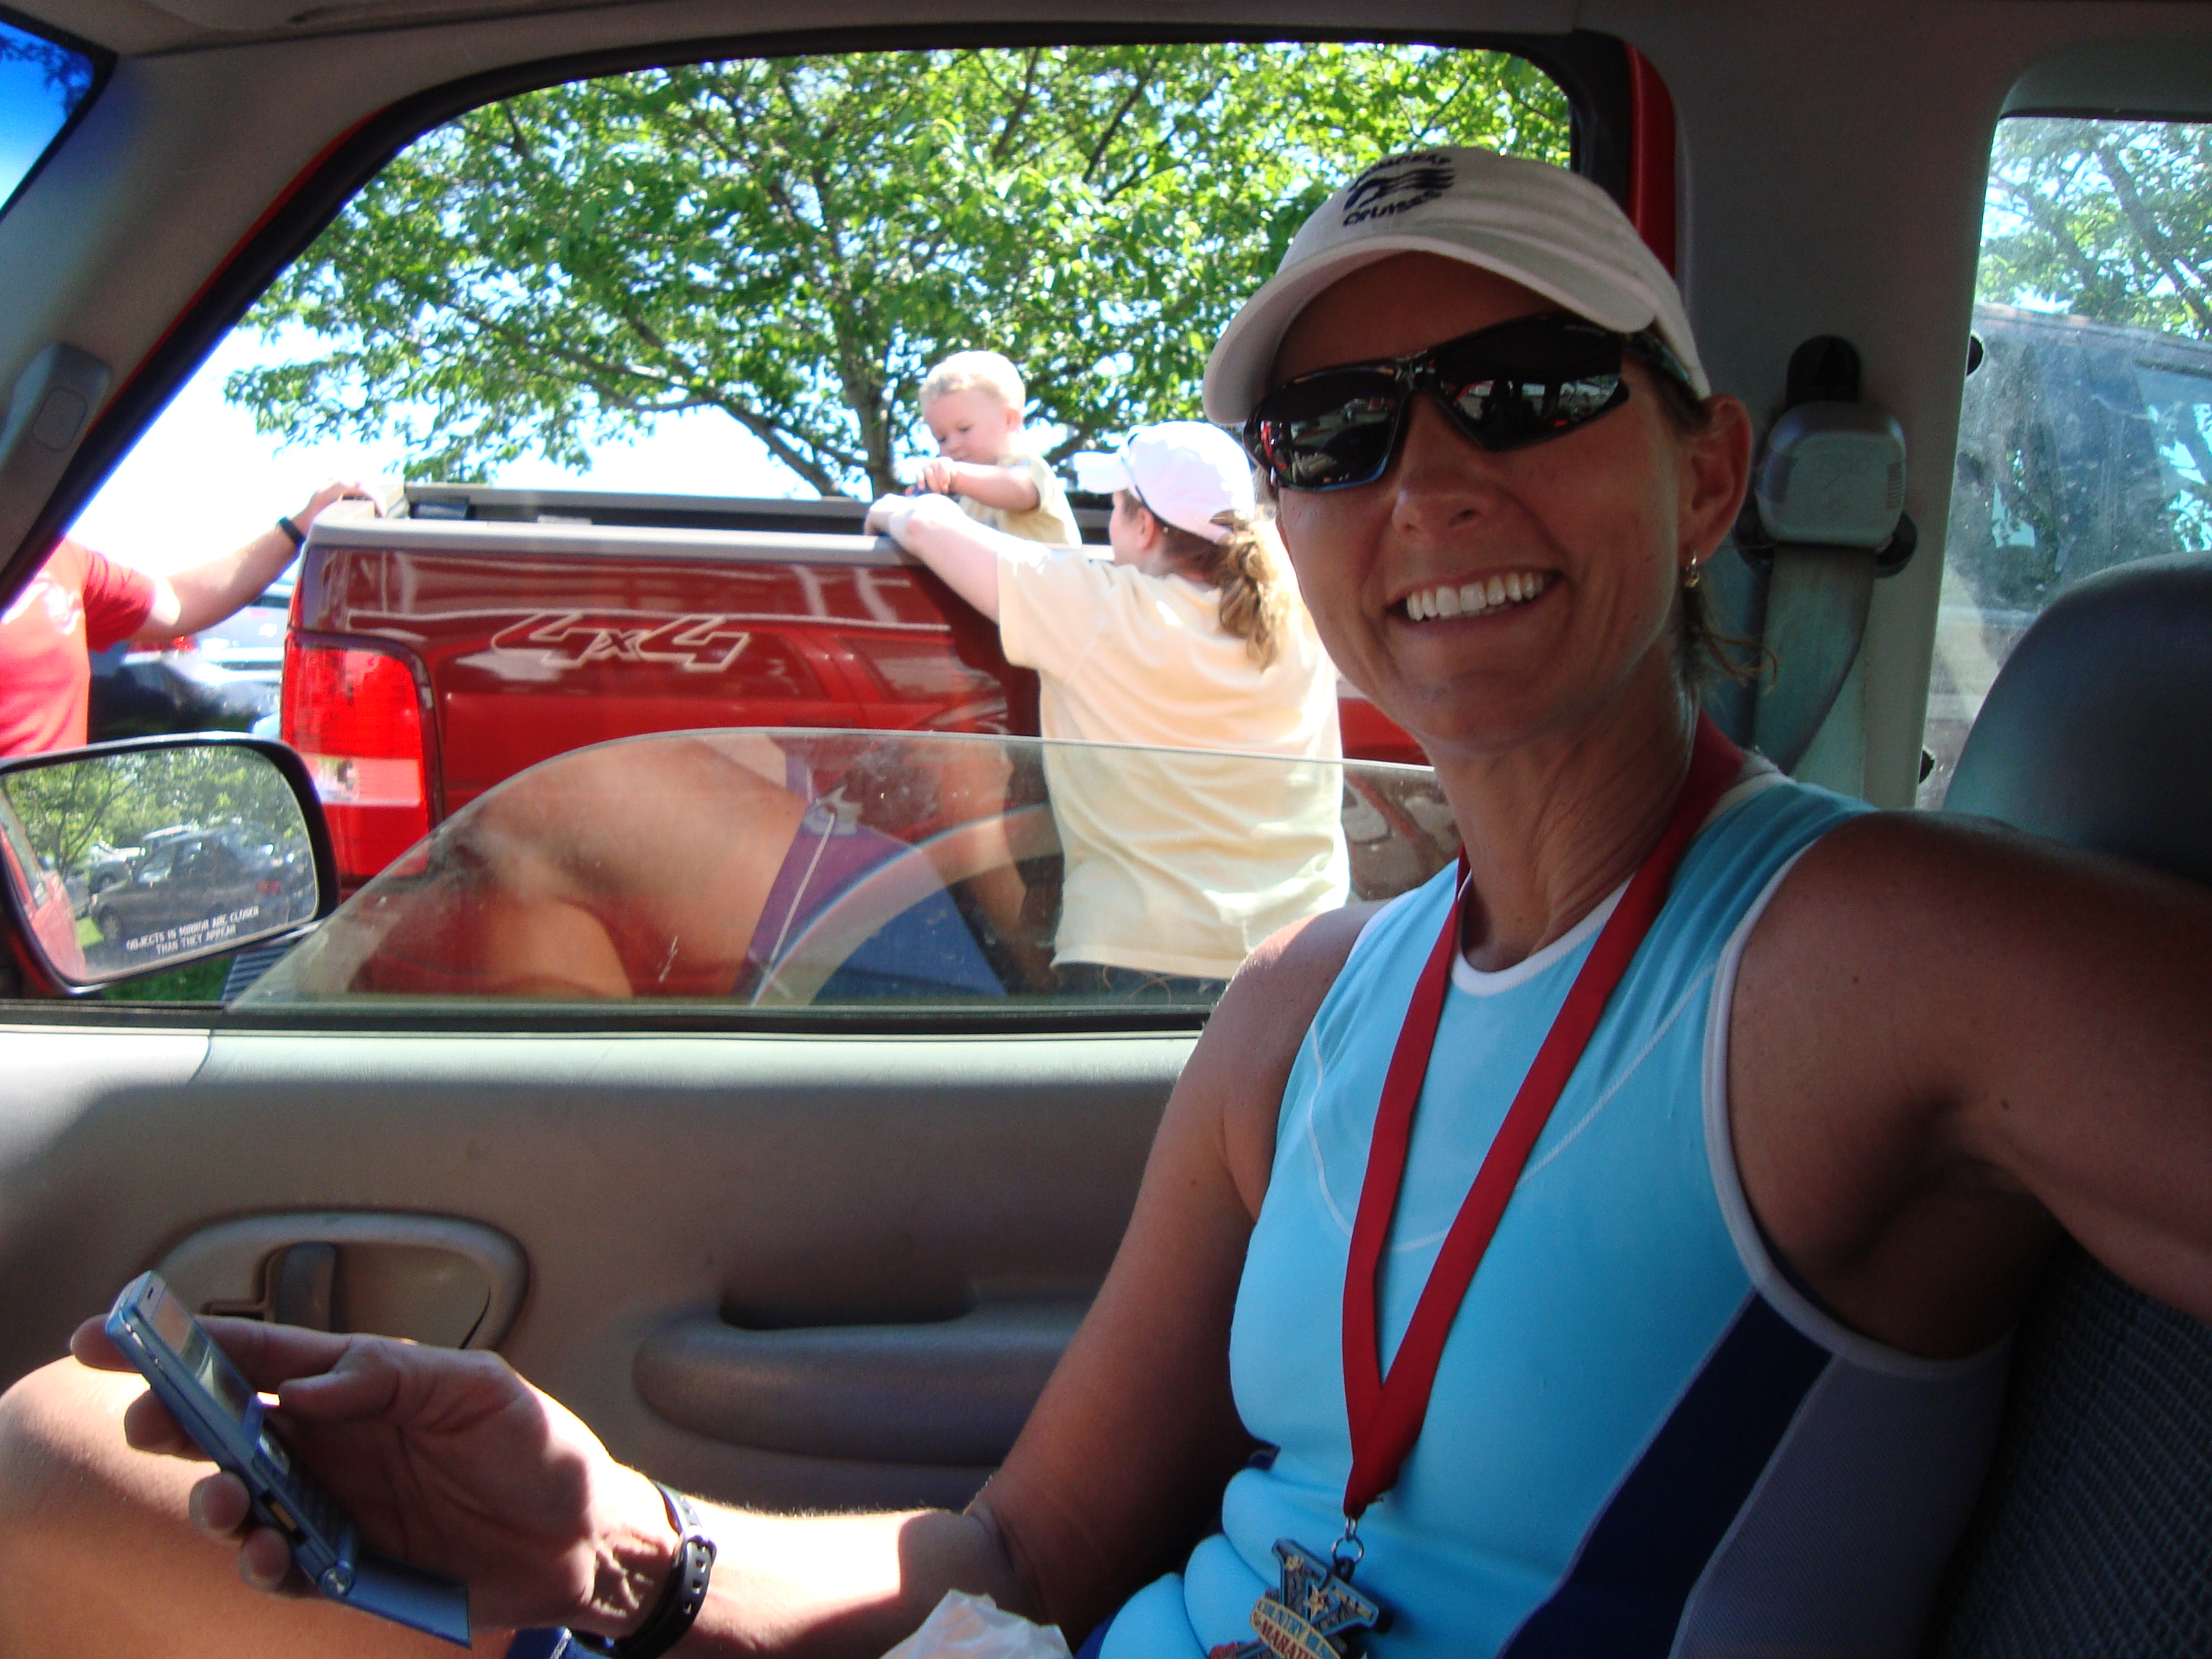 relaxing in the truck, post race